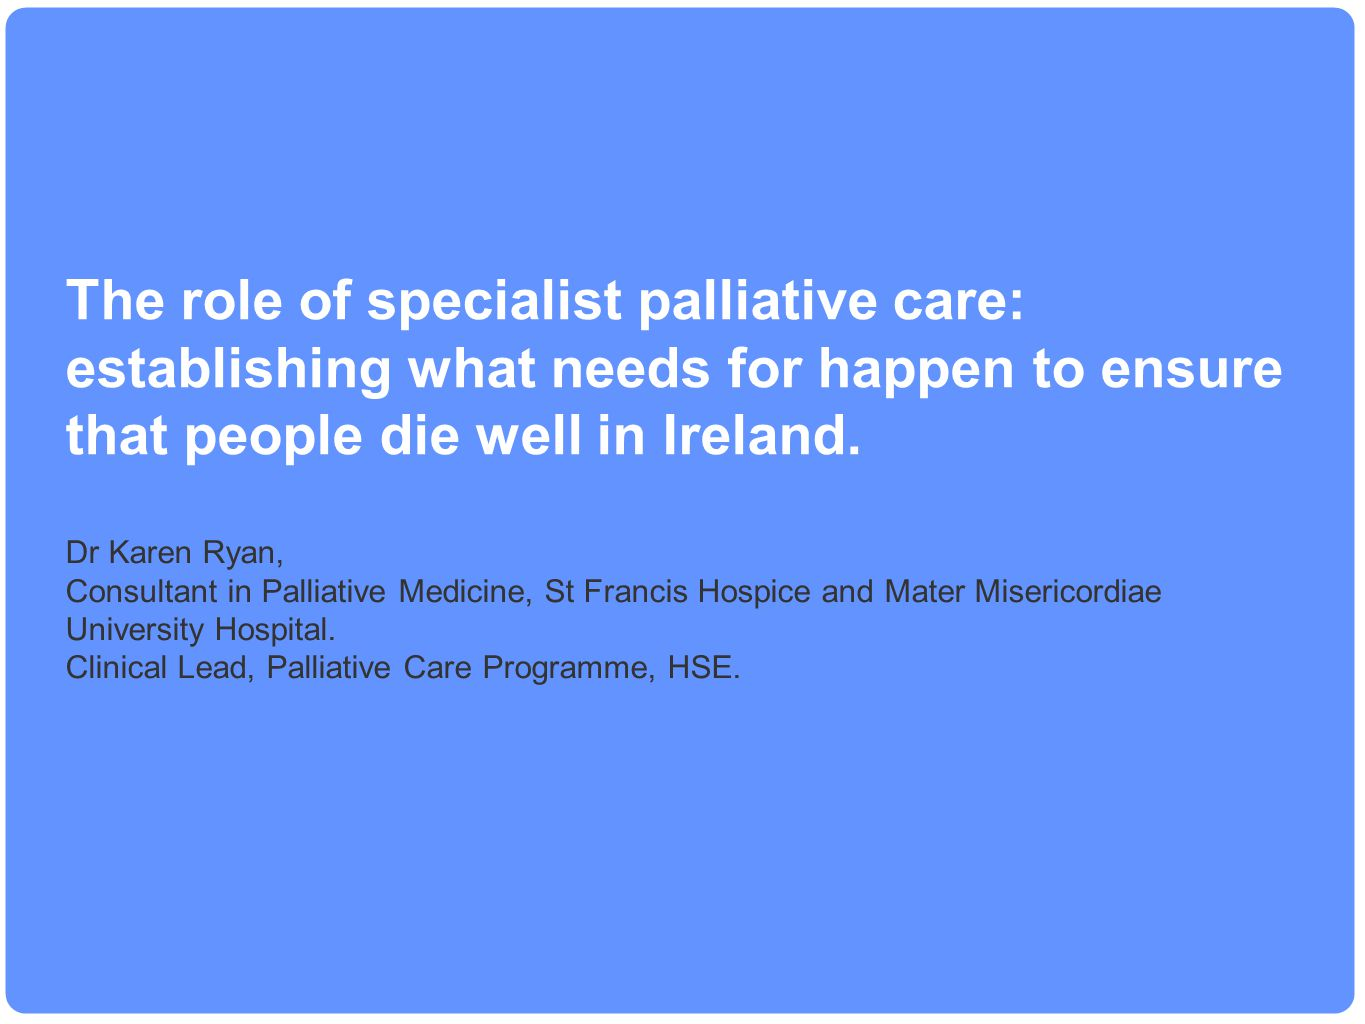 The role of specialist palliative care: establishing what needs for happen to ensure that people die well in Ireland. Dr Karen Ryan, Consultant in Pal